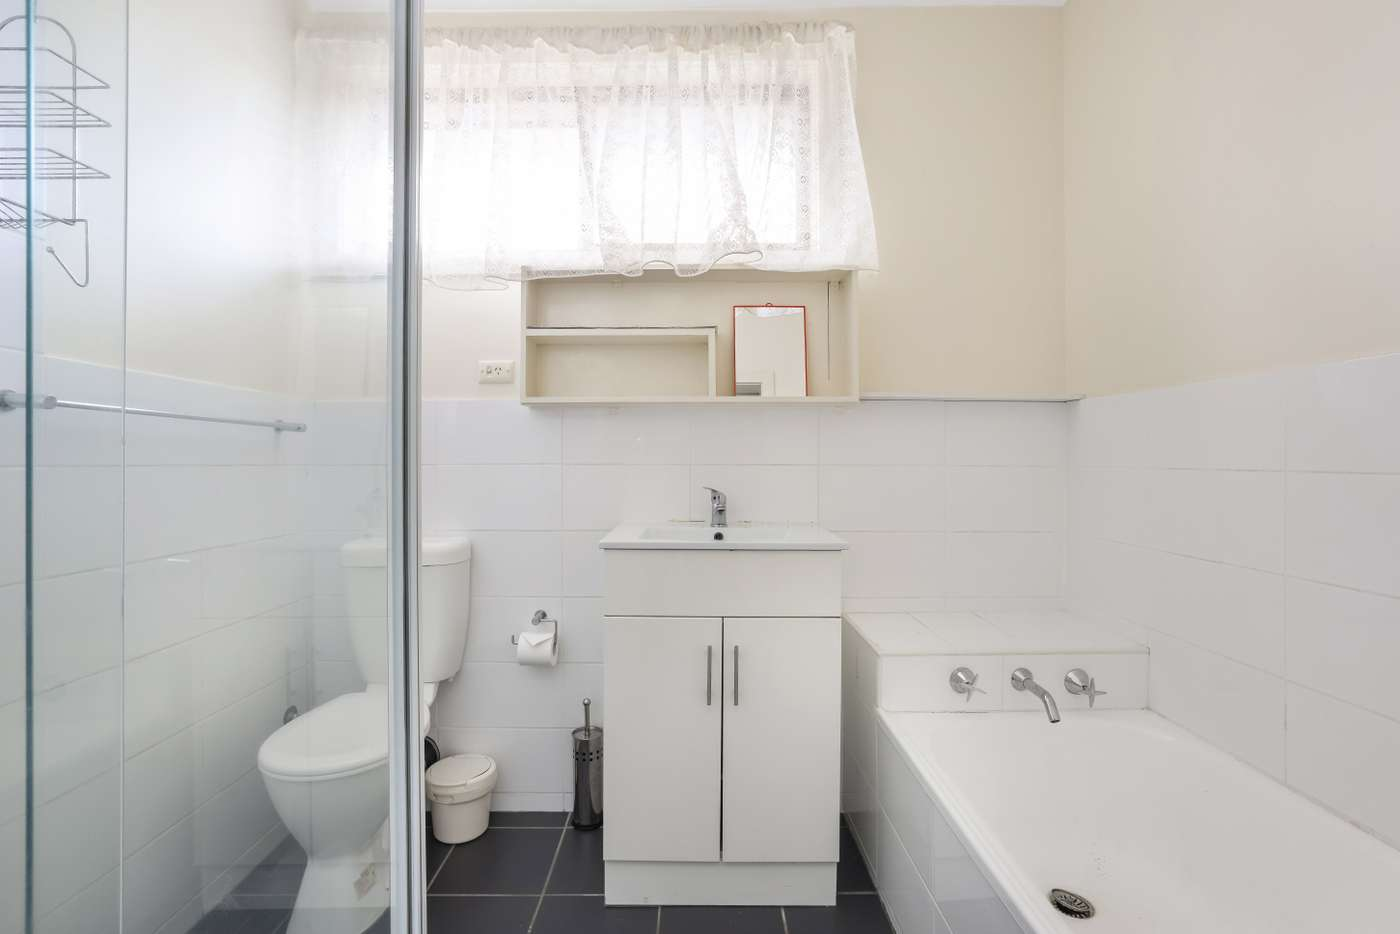 Seventh view of Homely unit listing, 1/33 Prospect Street, Glenroy VIC 3046